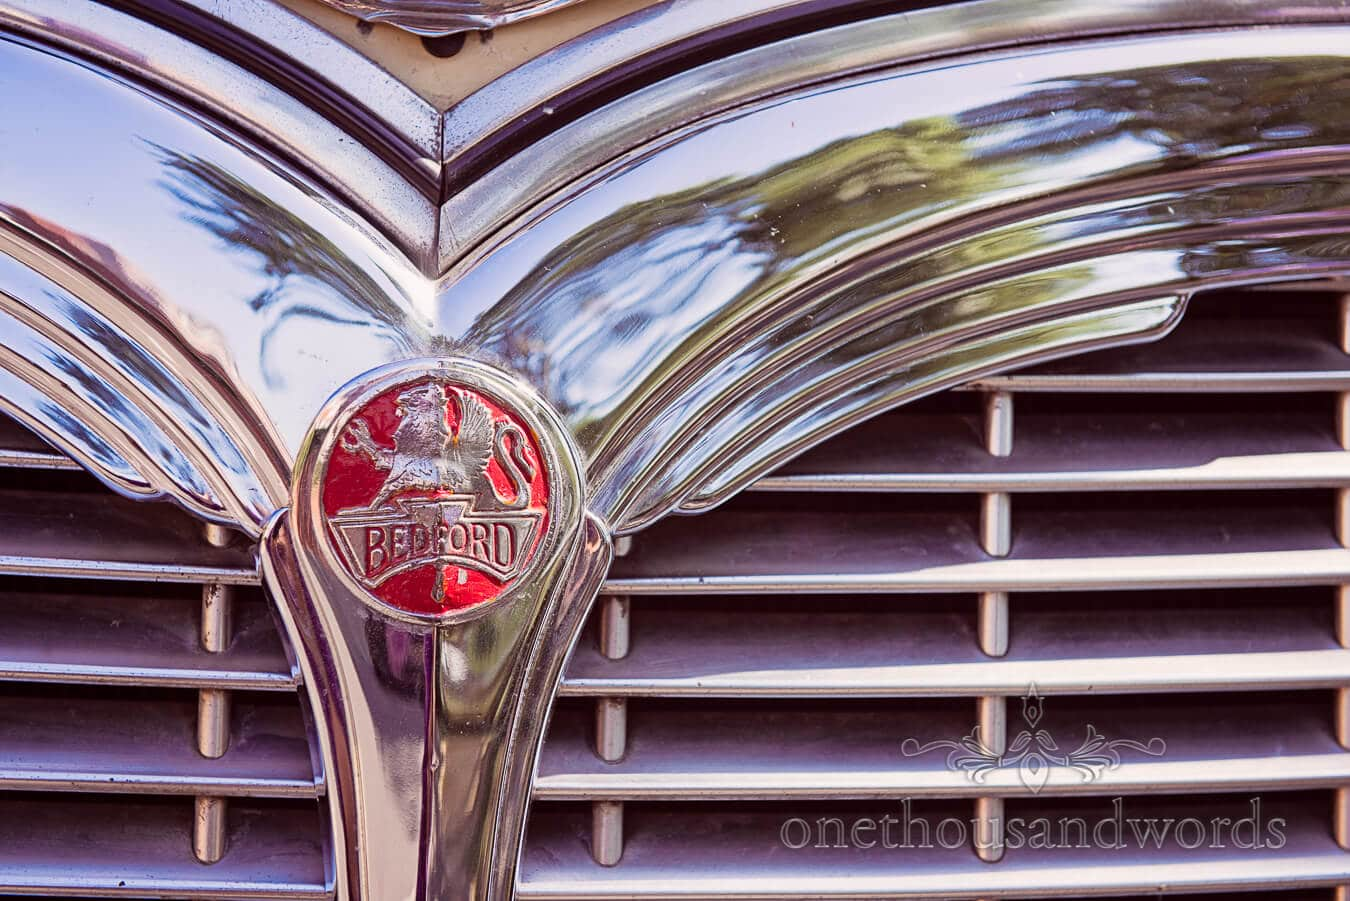 Photograph of Classic wedding Bedford Bus Chrome Grill